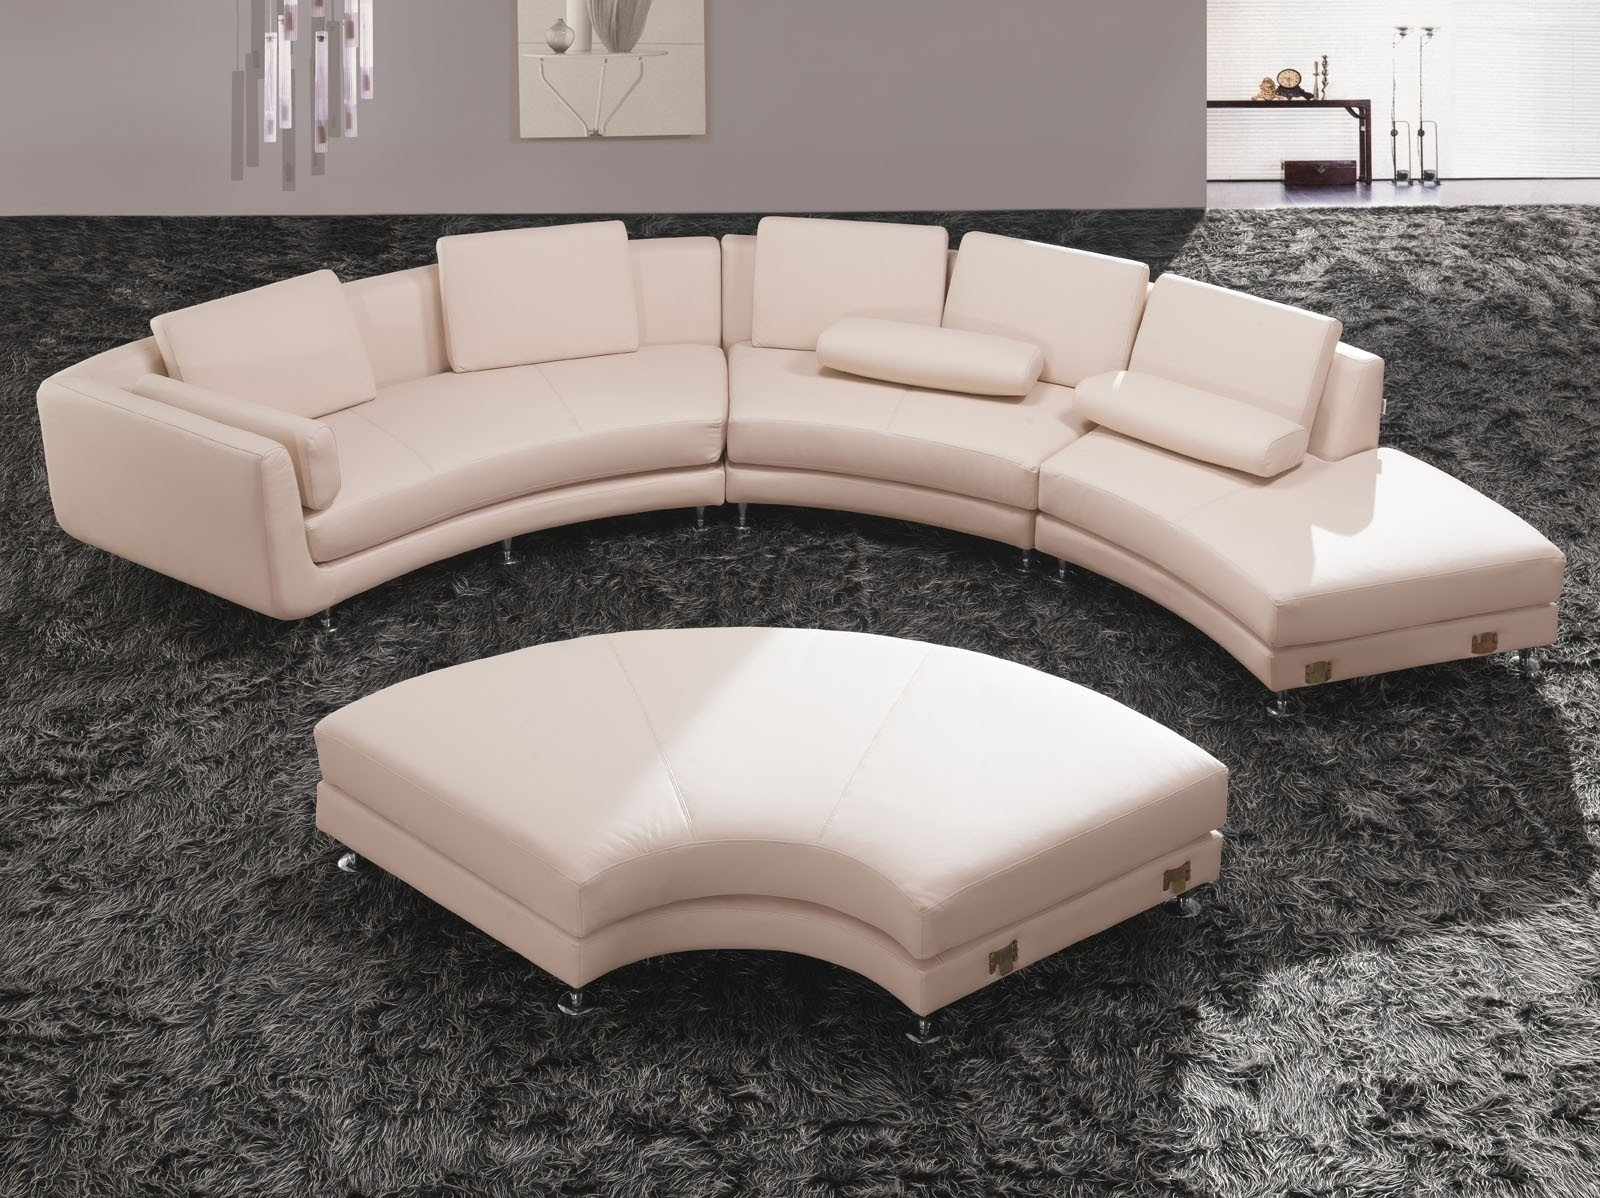 Sofas Center Curved Sectional Sofas Hickory Nc Luxury Sofa With Pertaining To Hickory Nc Sectional Sofas (View 7 of 10)